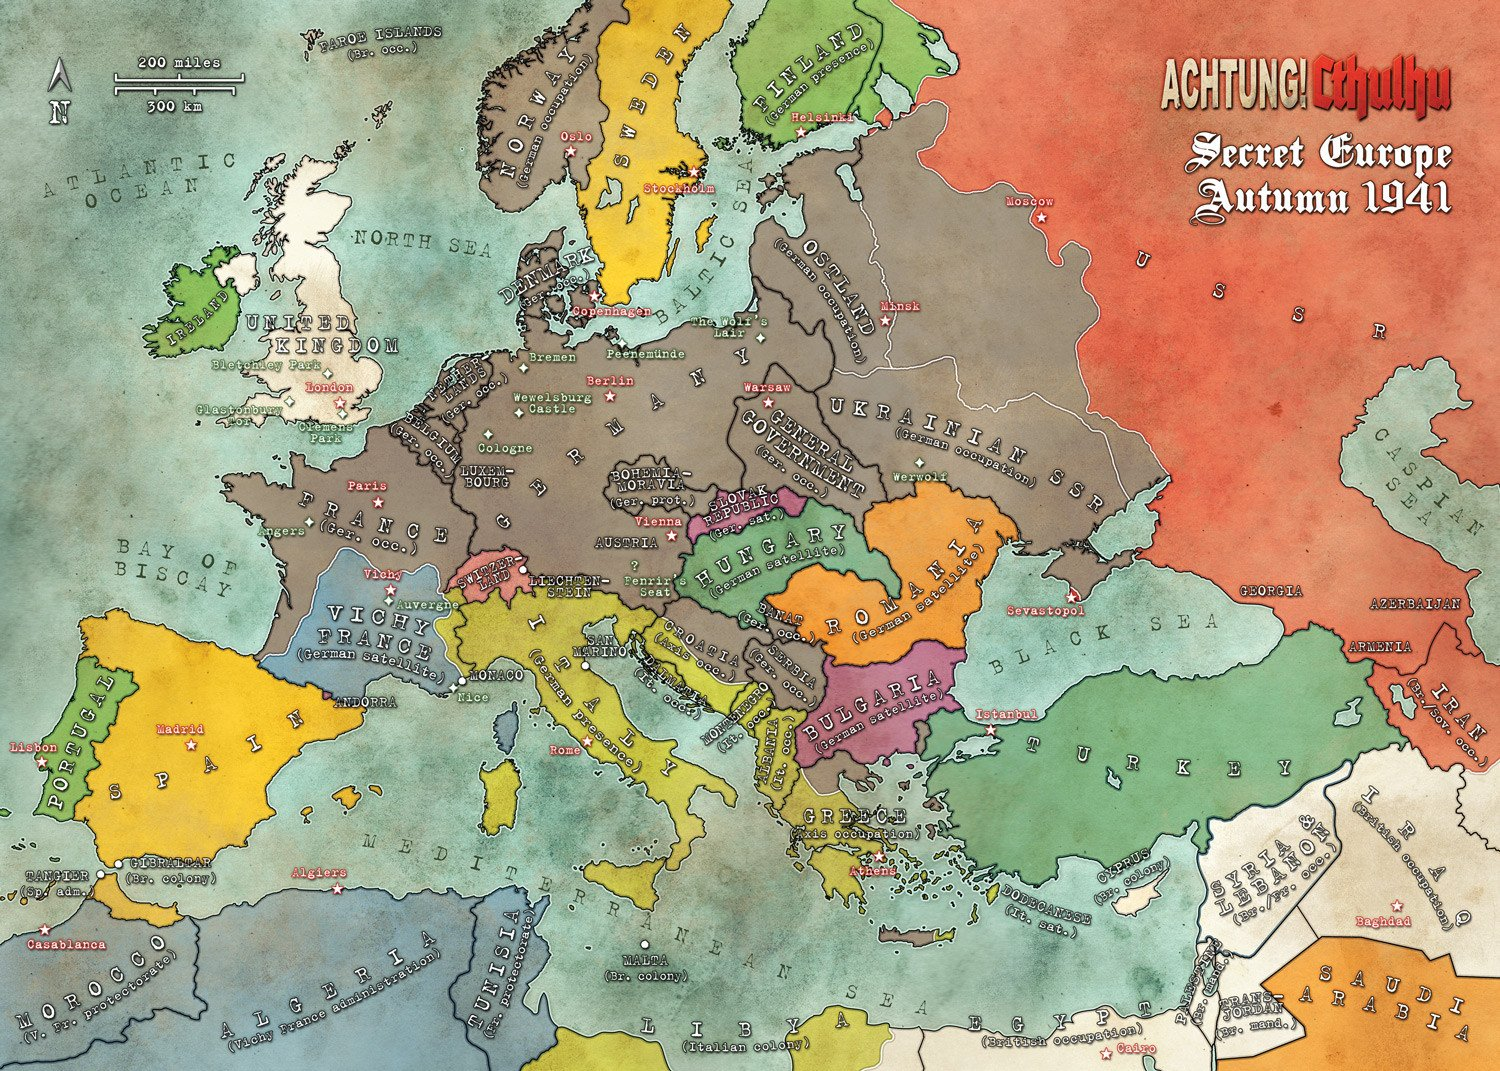 Achtung! Cthulhu Satin Map of Europe